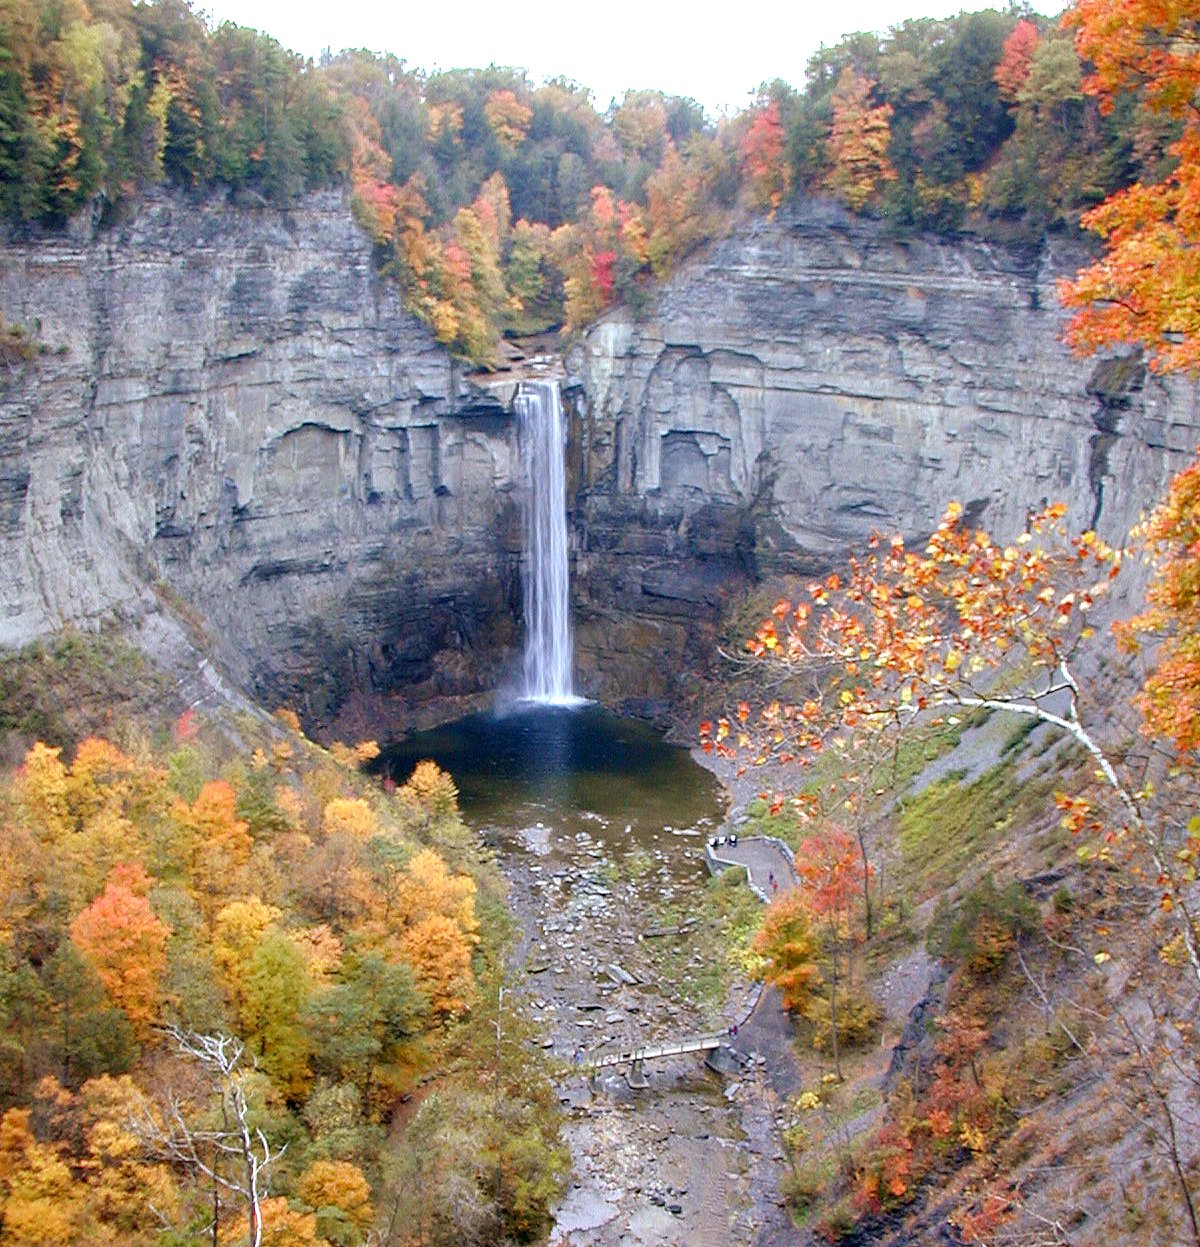 https://upload.wikimedia.org/wikipedia/commons/f/f3/Taughannock_Falls.JPG